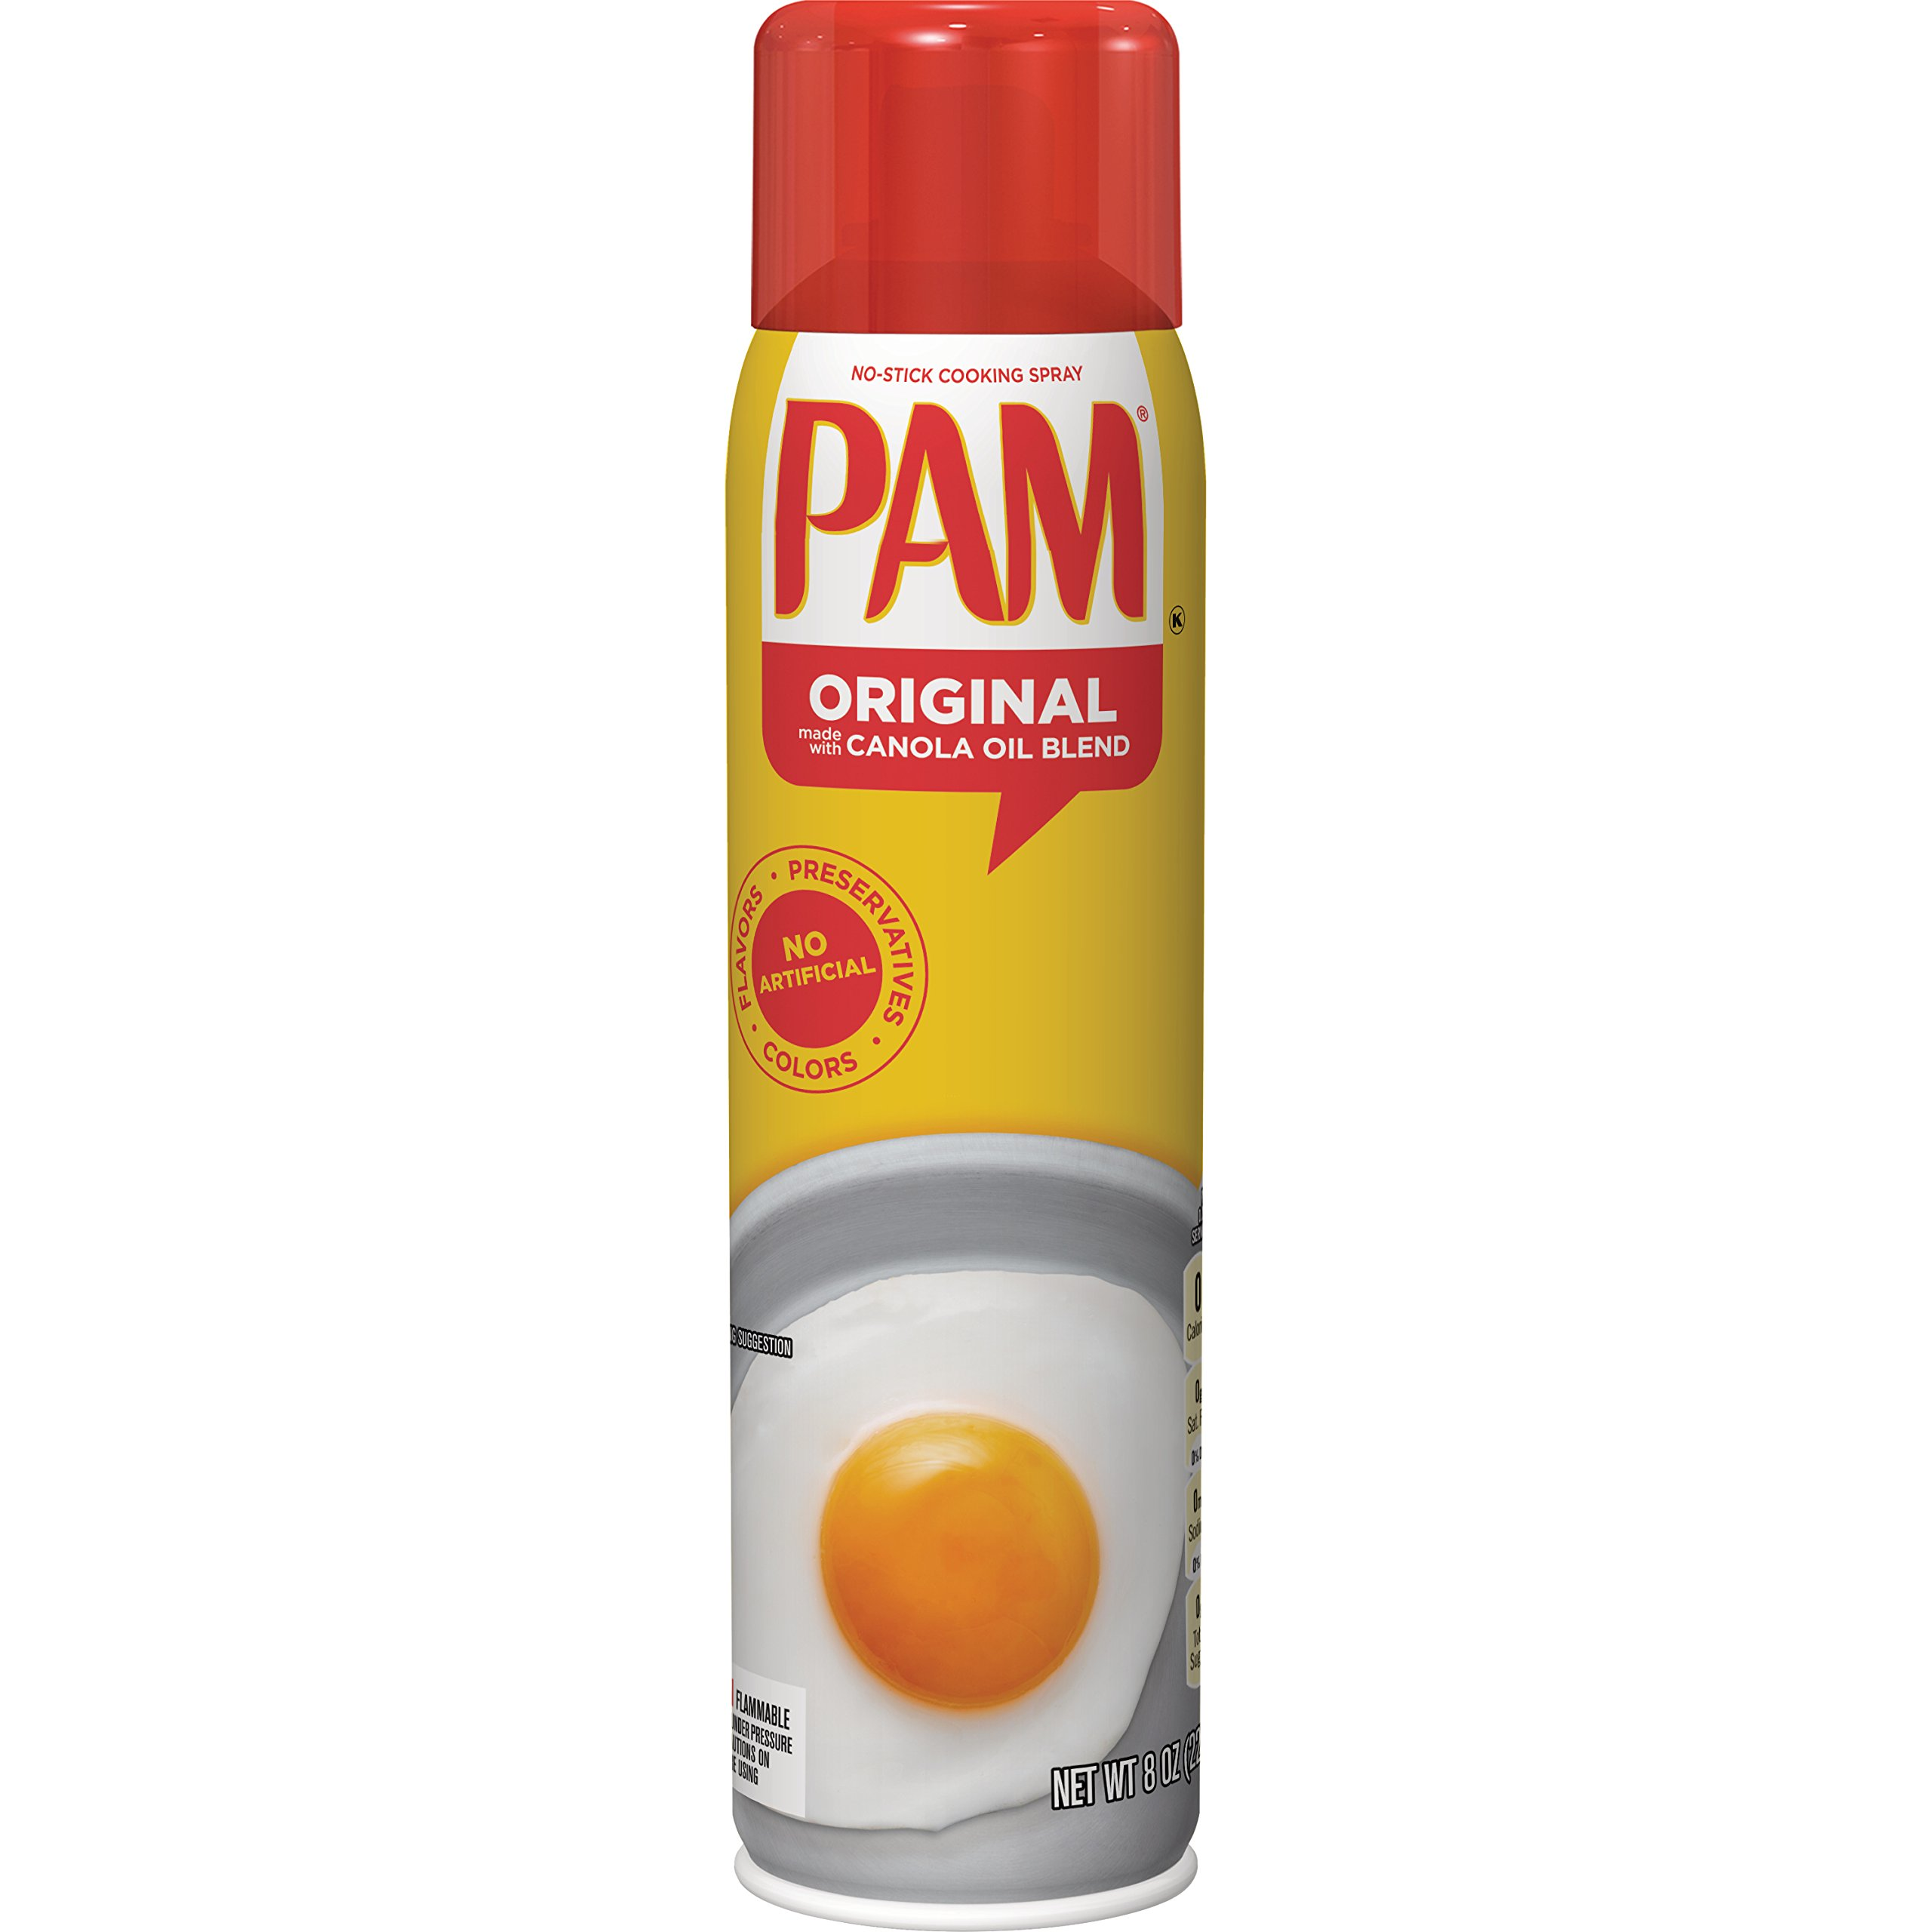 PAM Original No-Stick Cooking Spray, 6-Ounce Cans (Pack of 12)